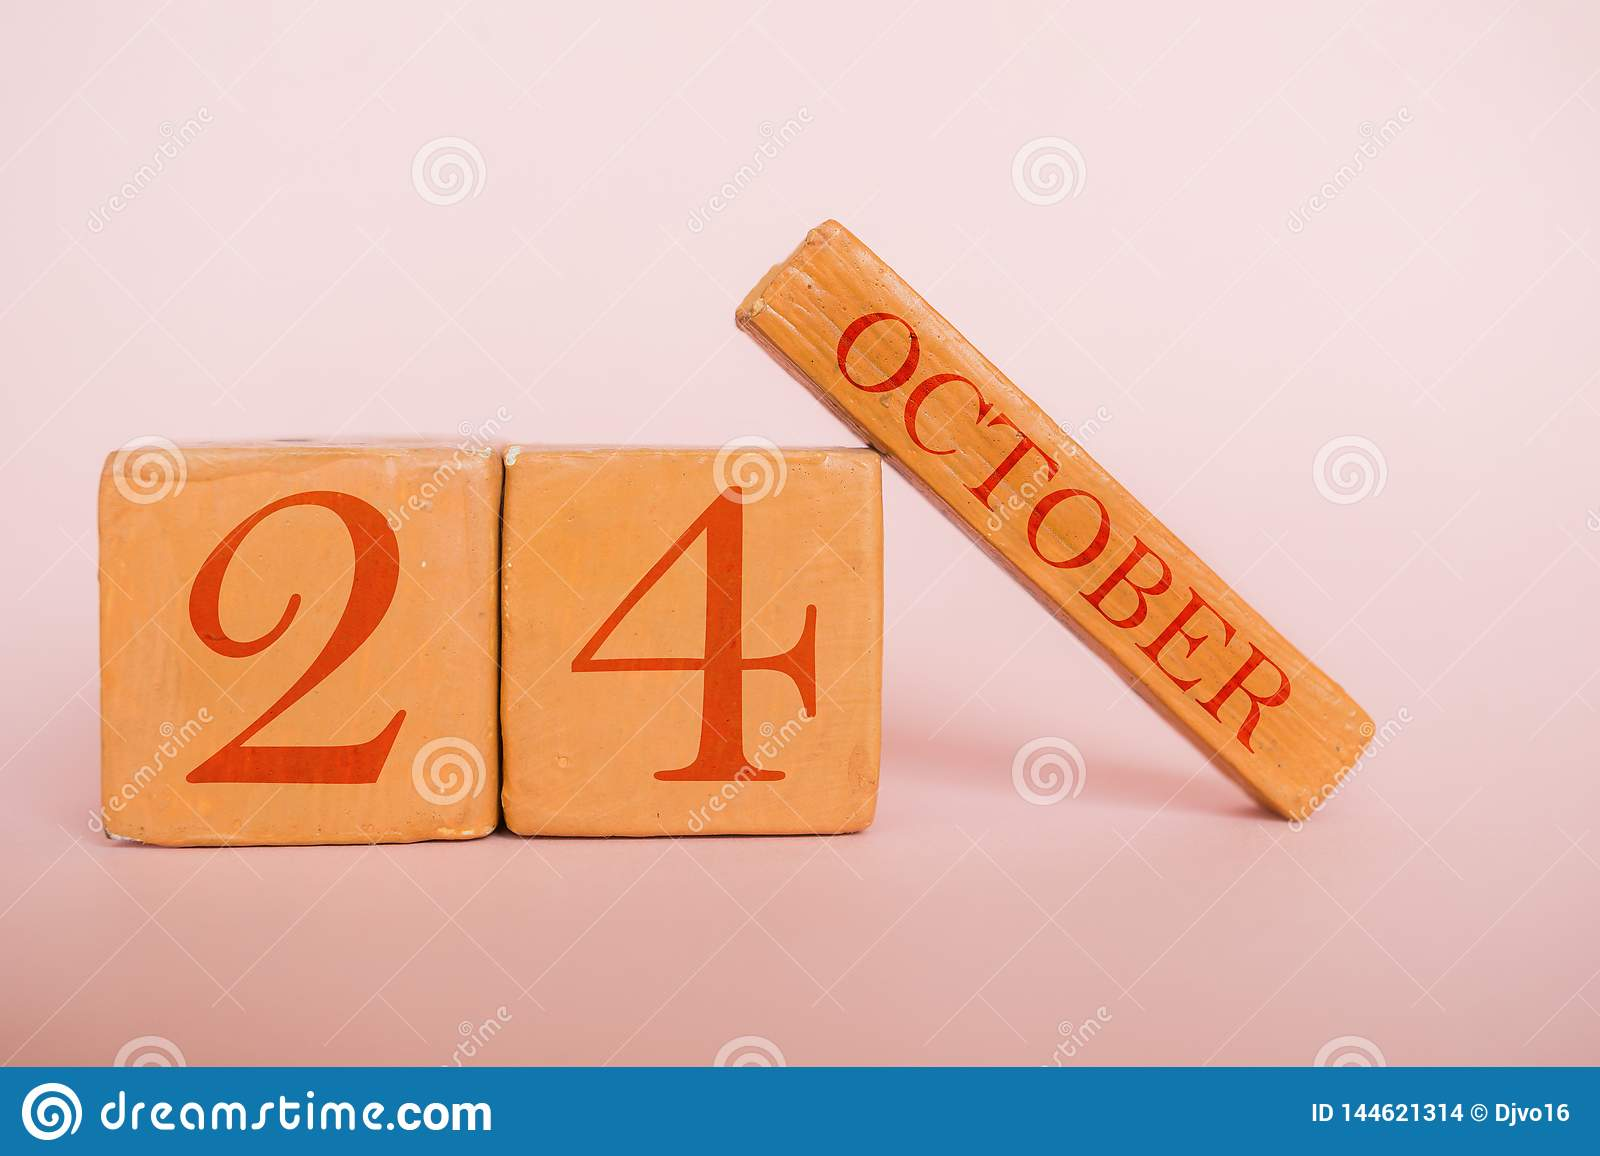 october 24th. Day 24 of month, handmade wood calendar  on modern color background. autumn month, day of the year concept